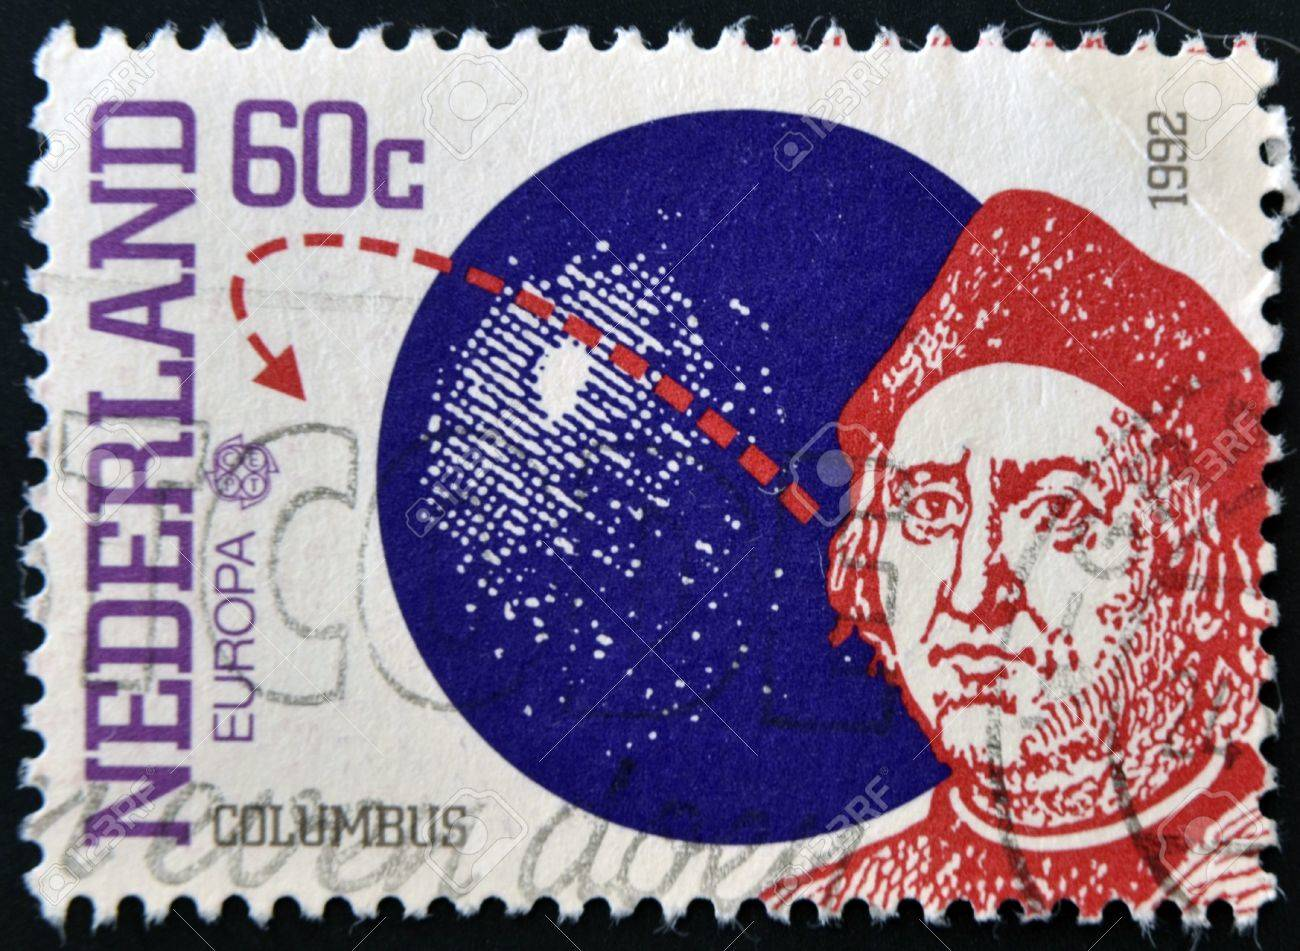 HOLLAND - CIRCA 1992: A stamp printed in Netherlands shows Columbus, circa 1992 Stock Photo - 11439069